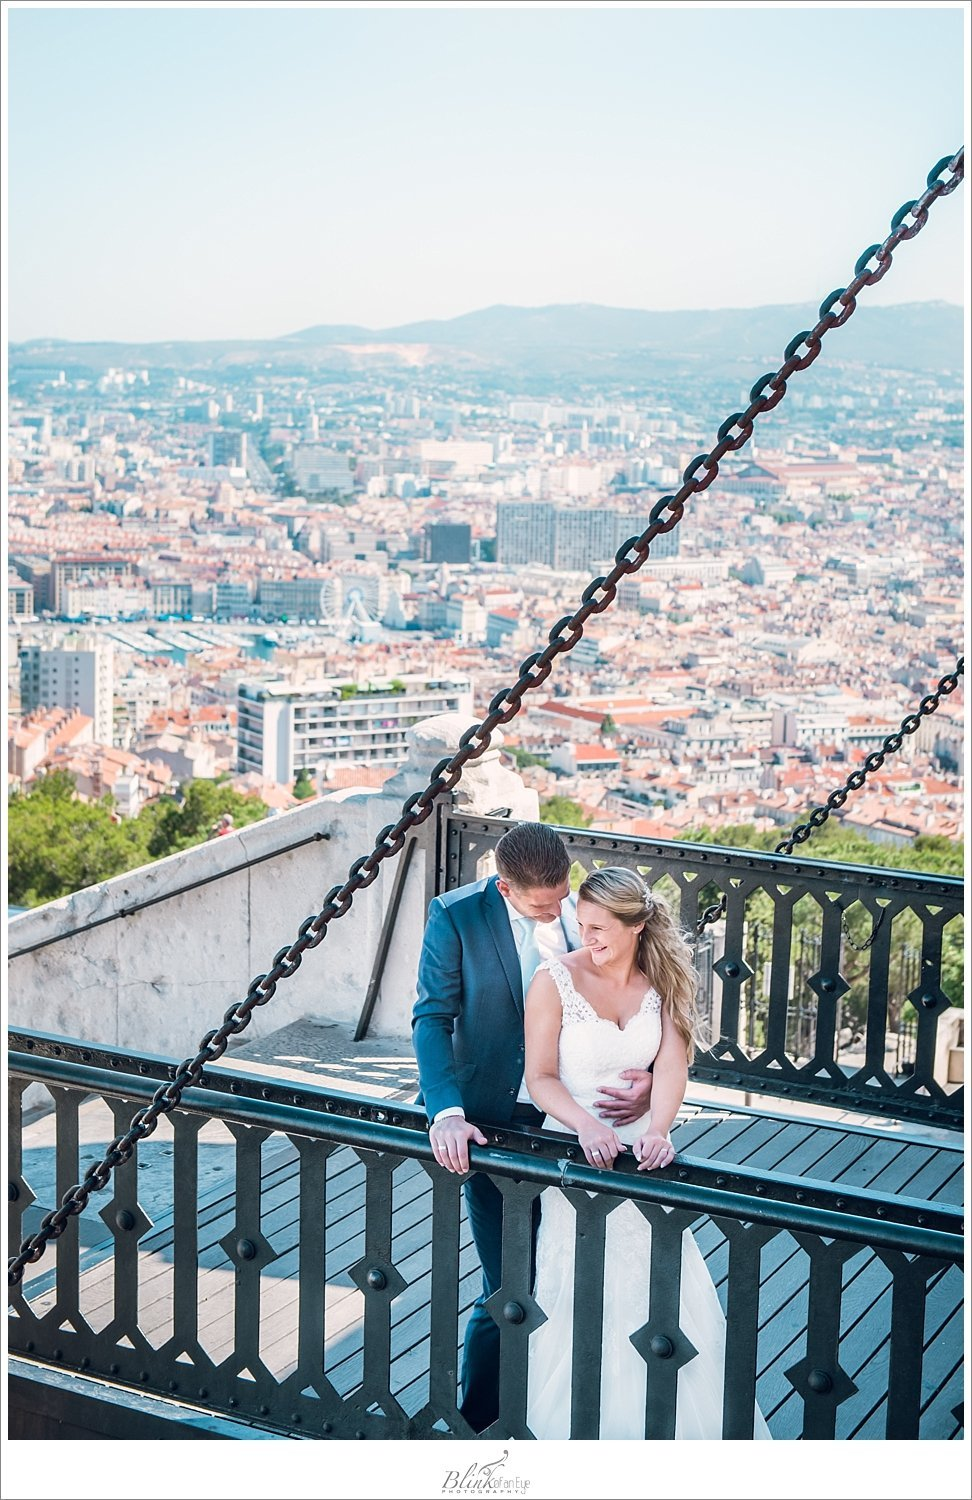 Marseille, France at the feet of the bride and groom during post wedding photo shoot In Marseille!